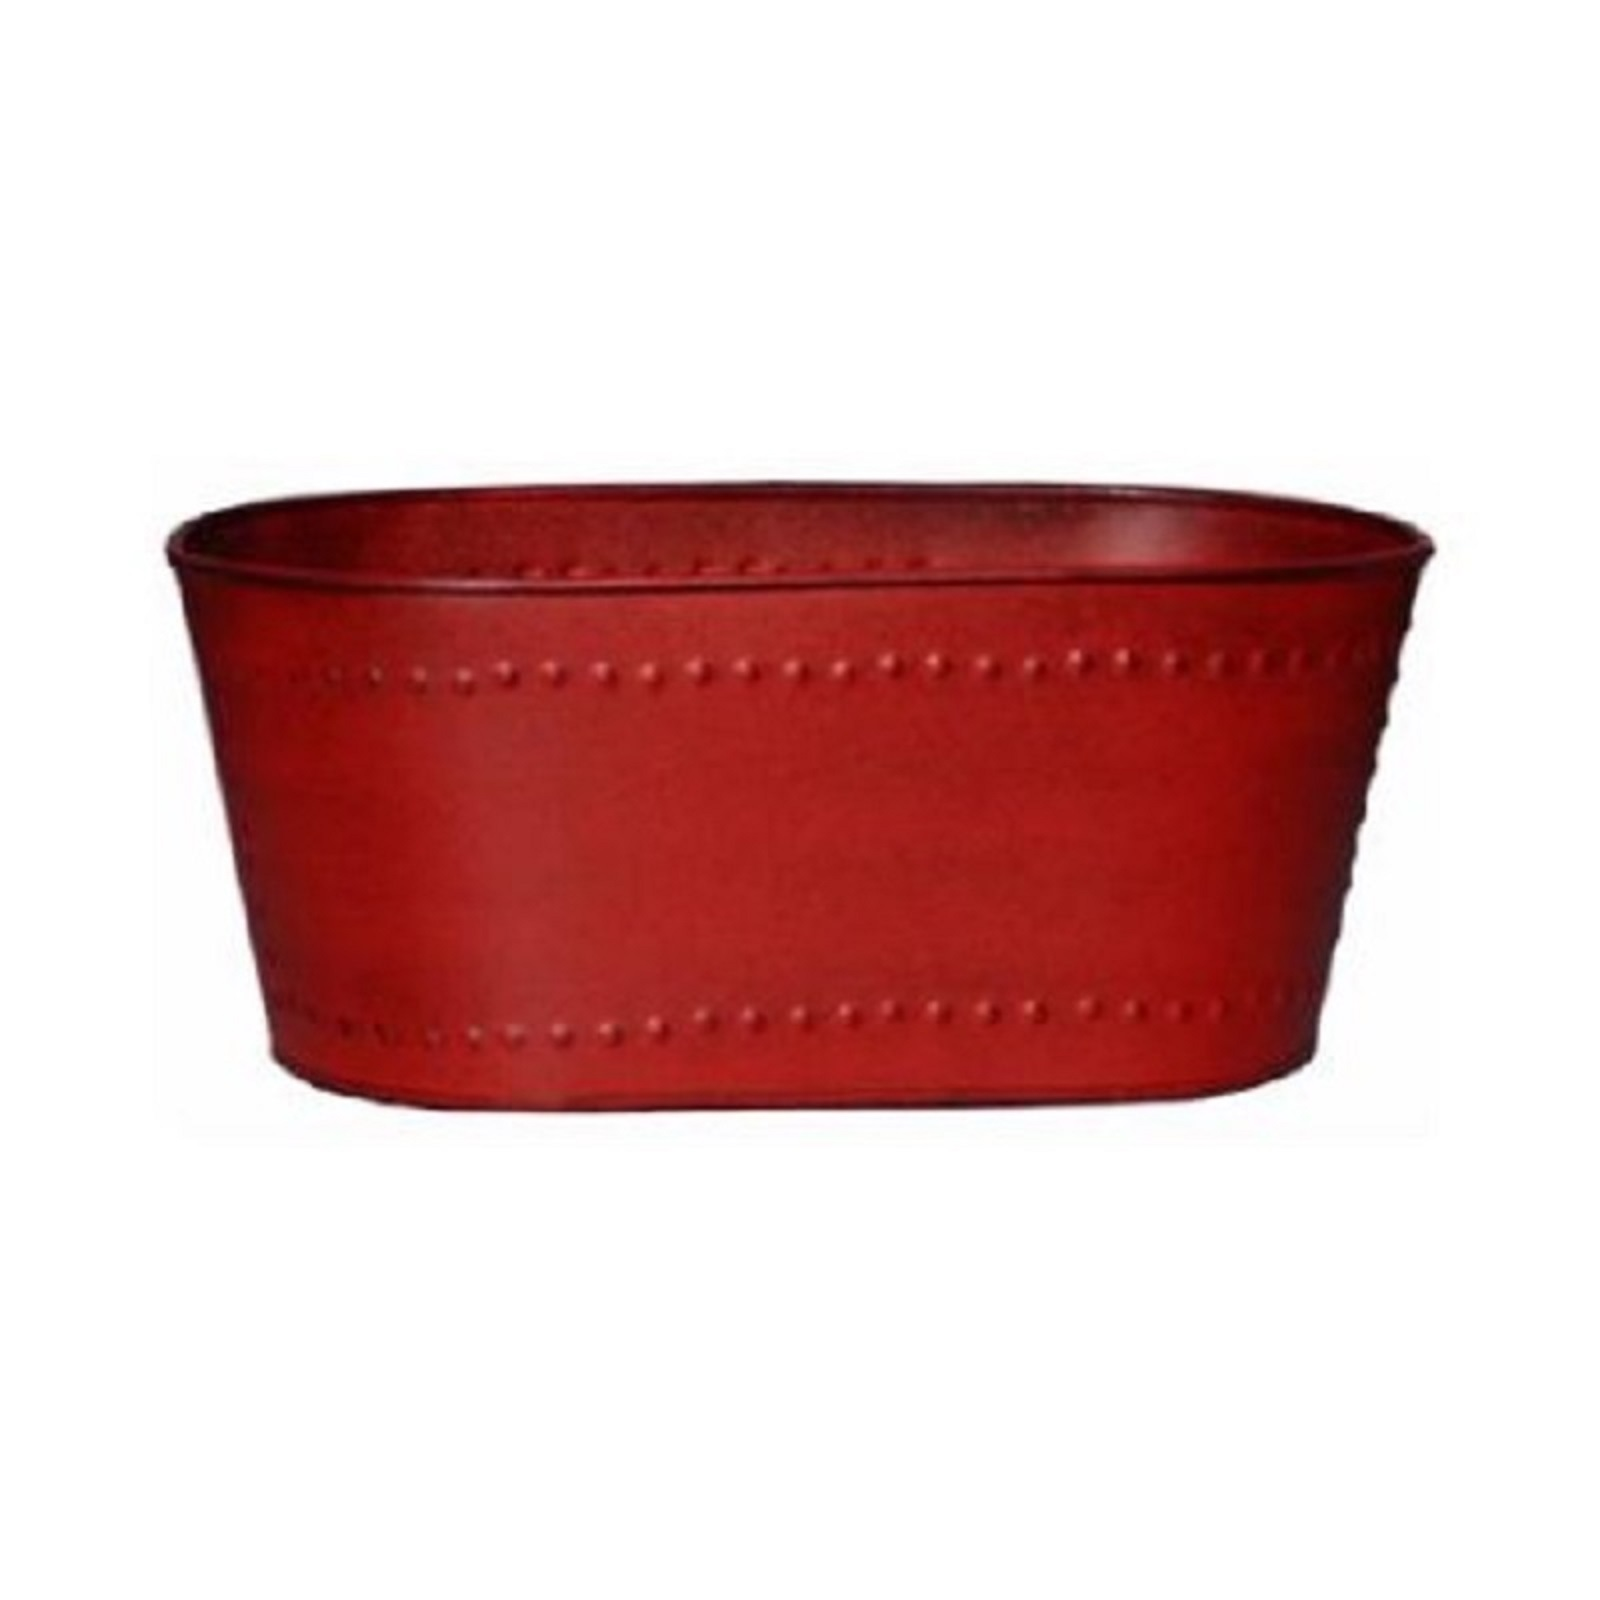 "Robert Allen Home & Garden Metal Oval Planter 10"""" Red"